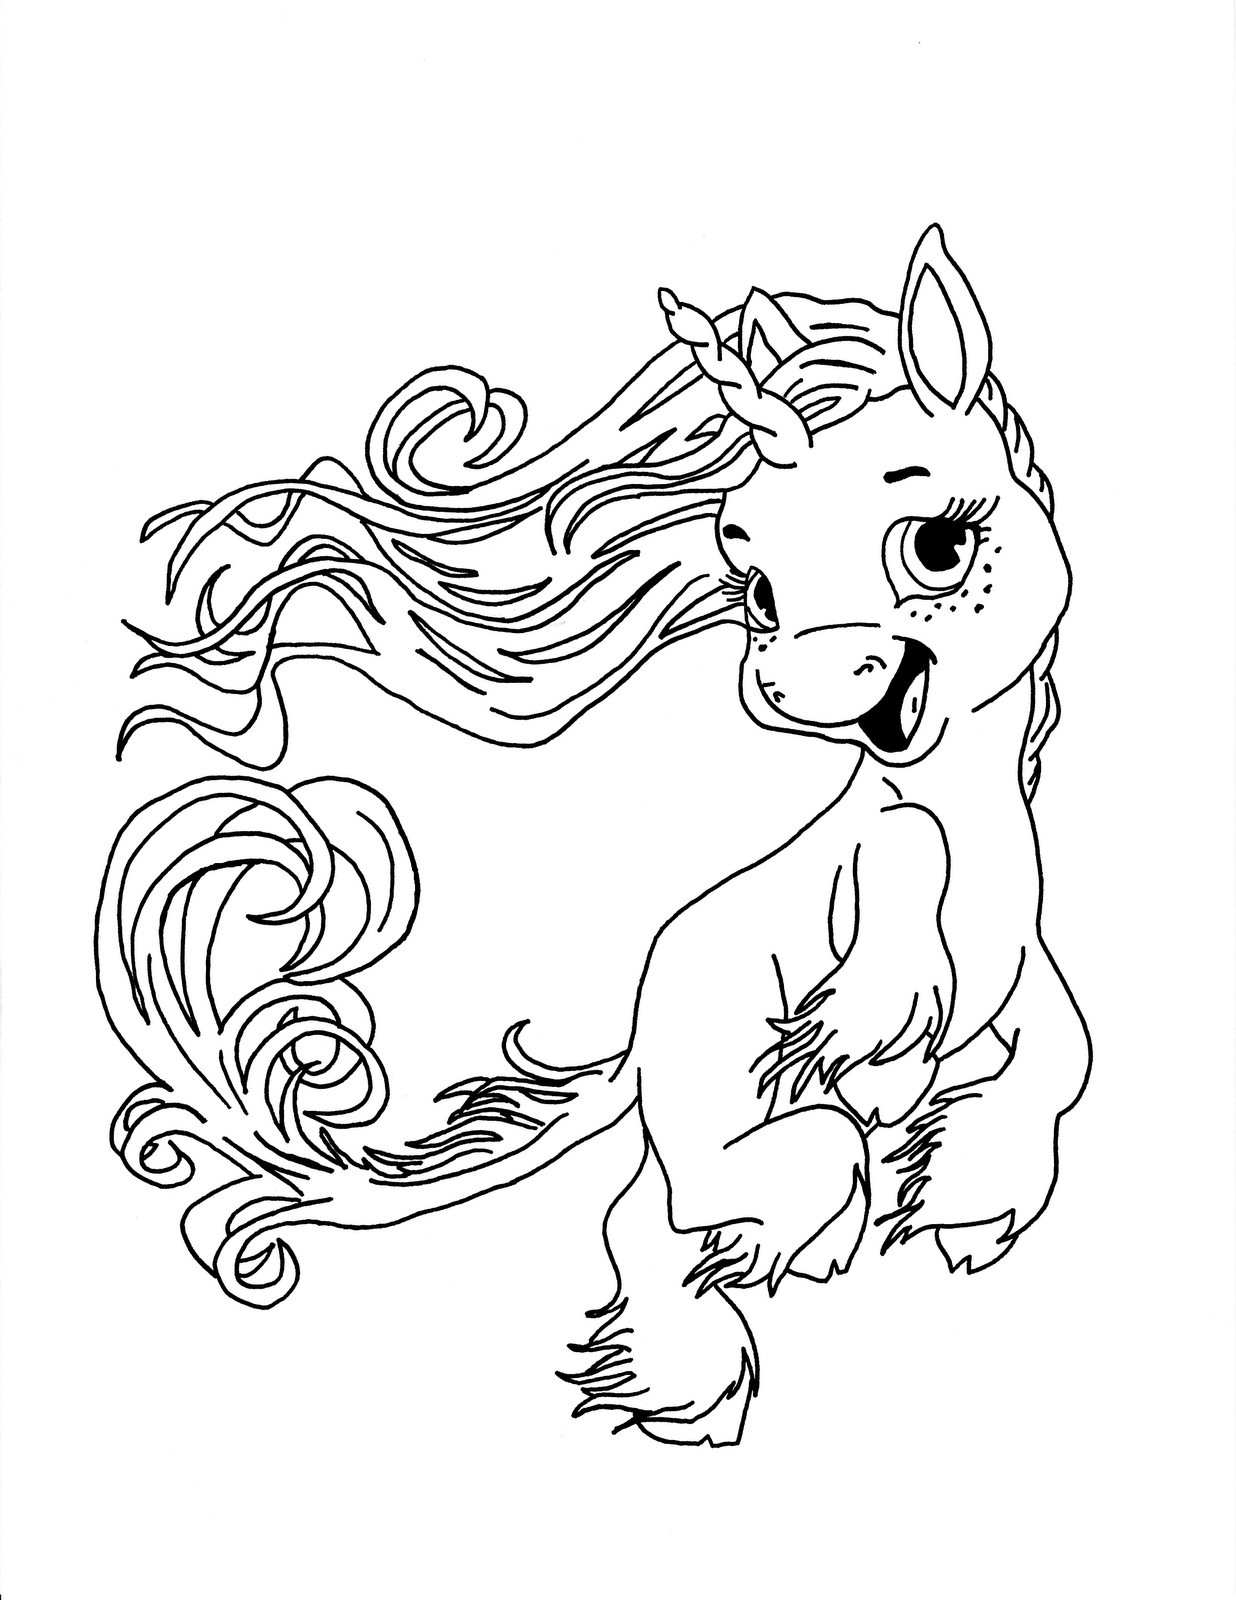 unicorn anime coloring pages anime coloring pages anime unicorn coloring page sheets anime pages coloring unicorn